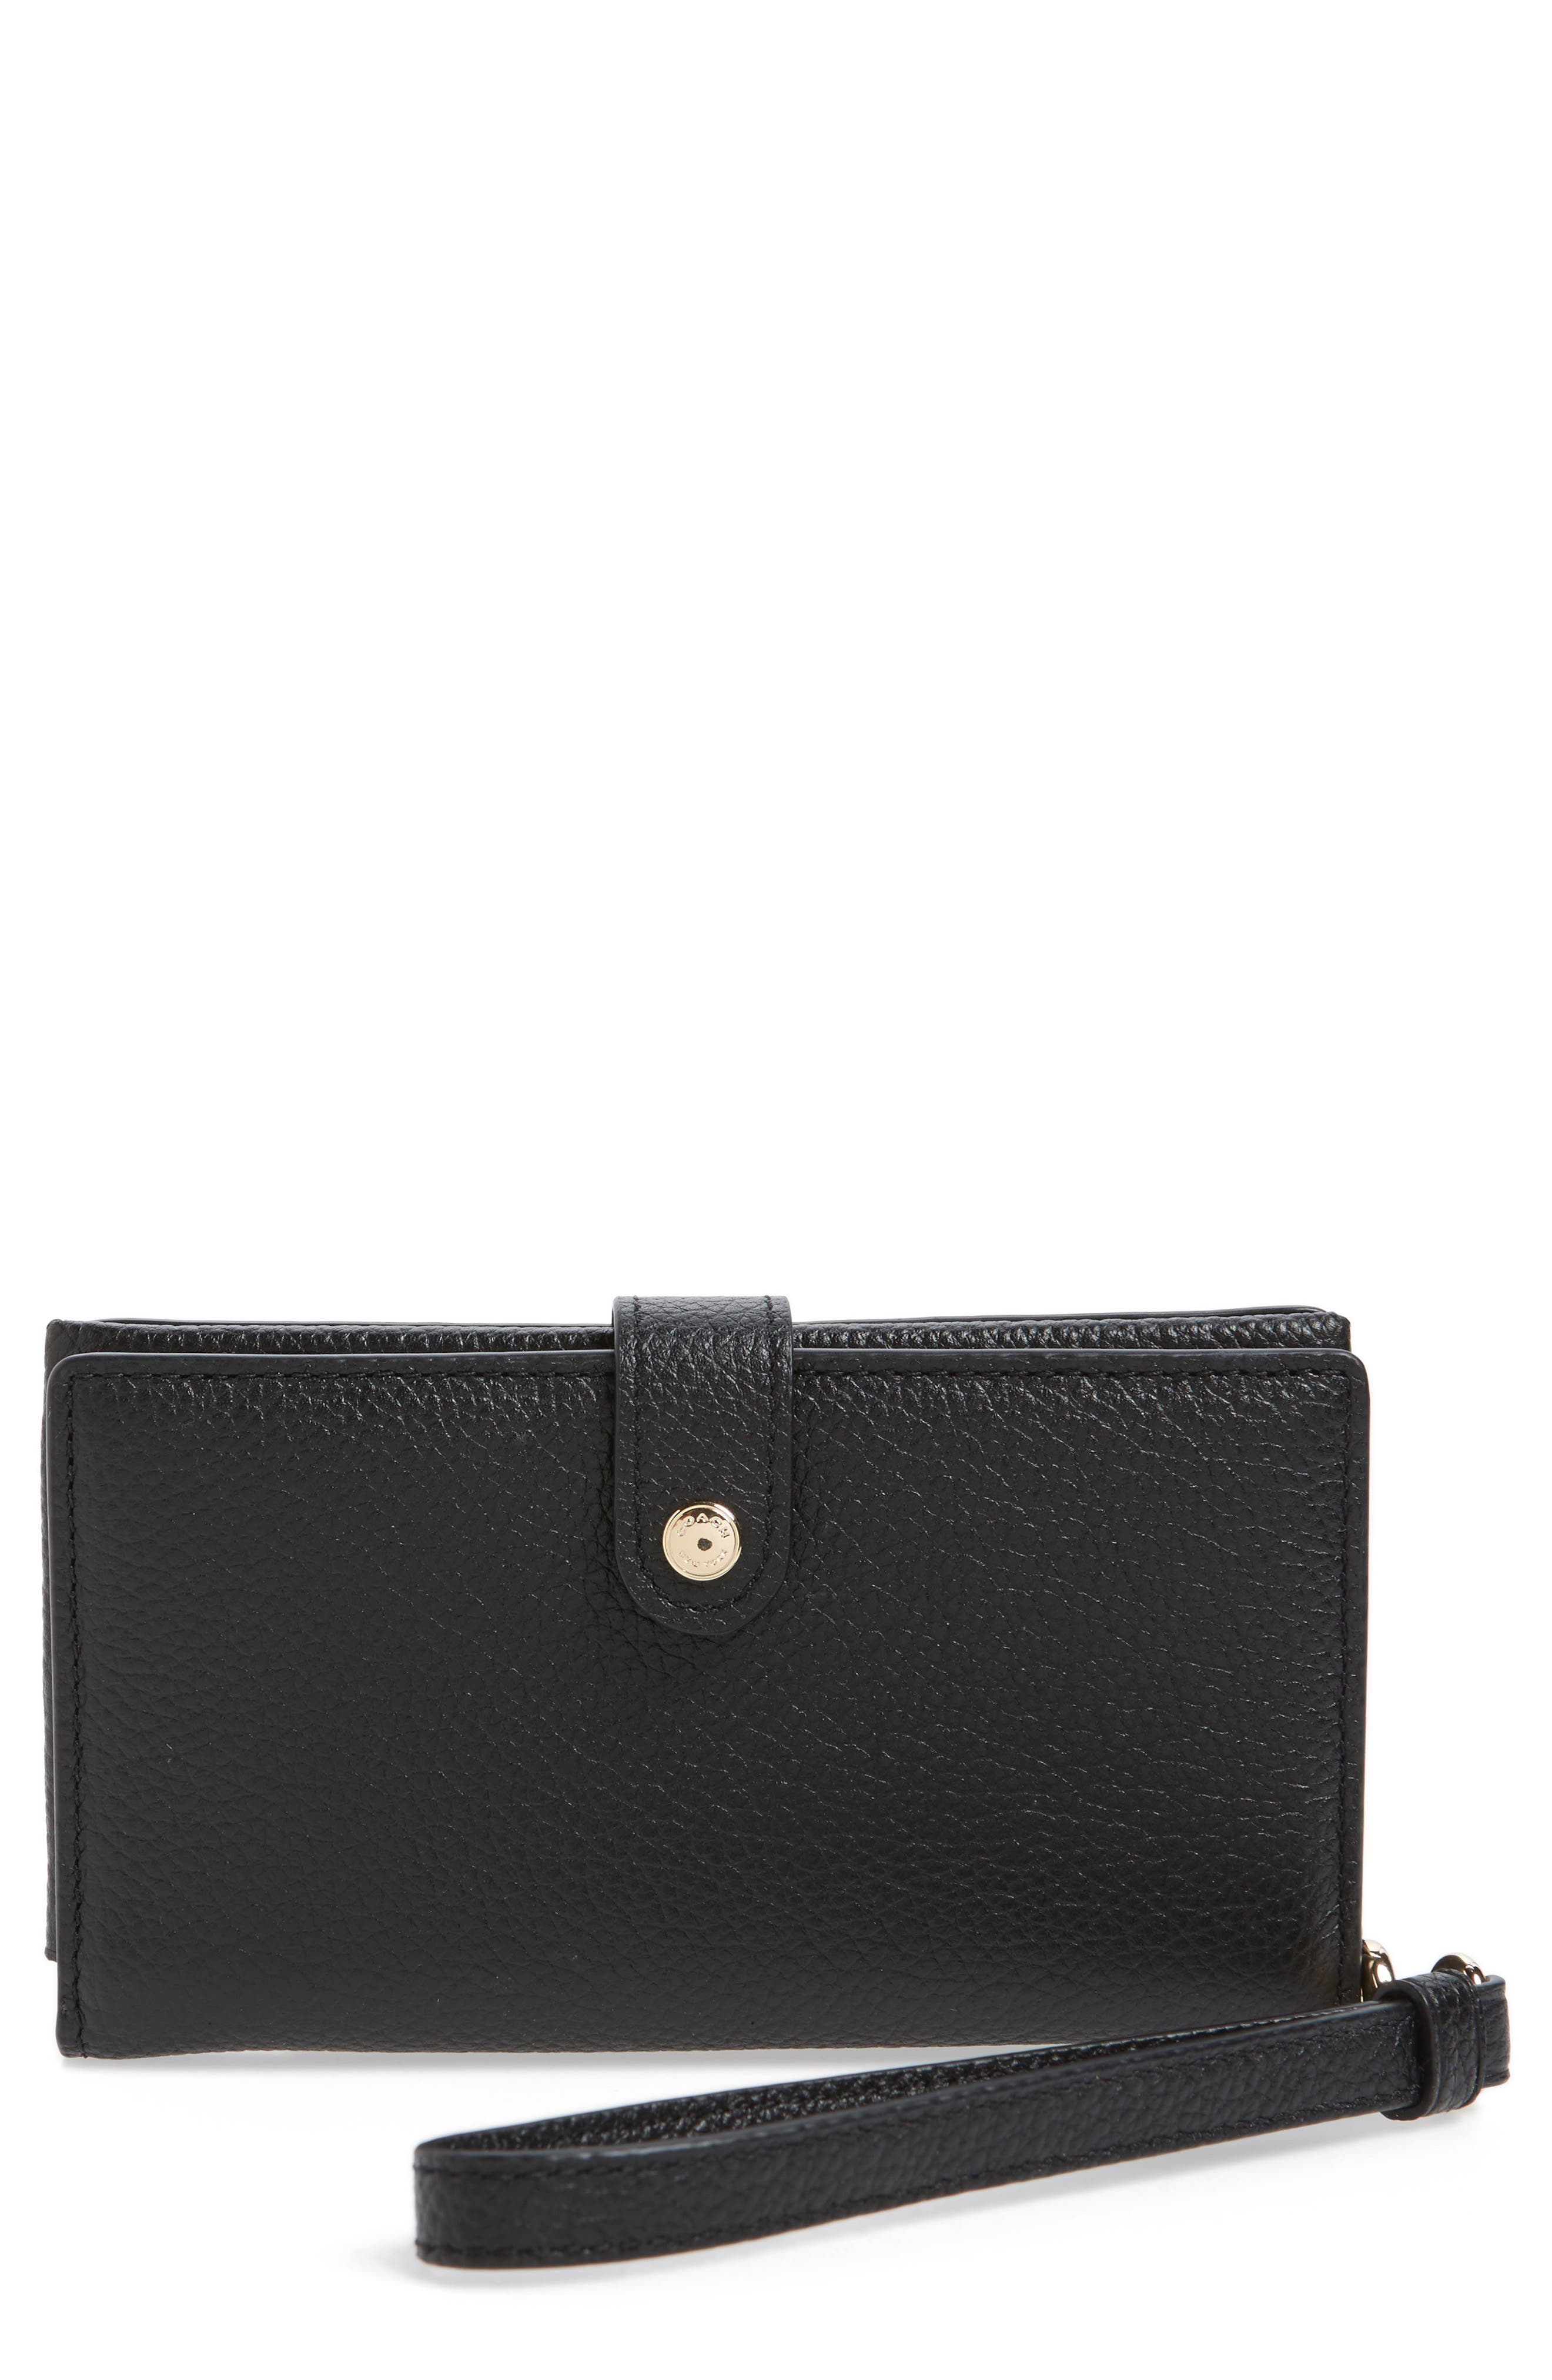 Main Image - COACH Calfskin Leather Phone Wristlet